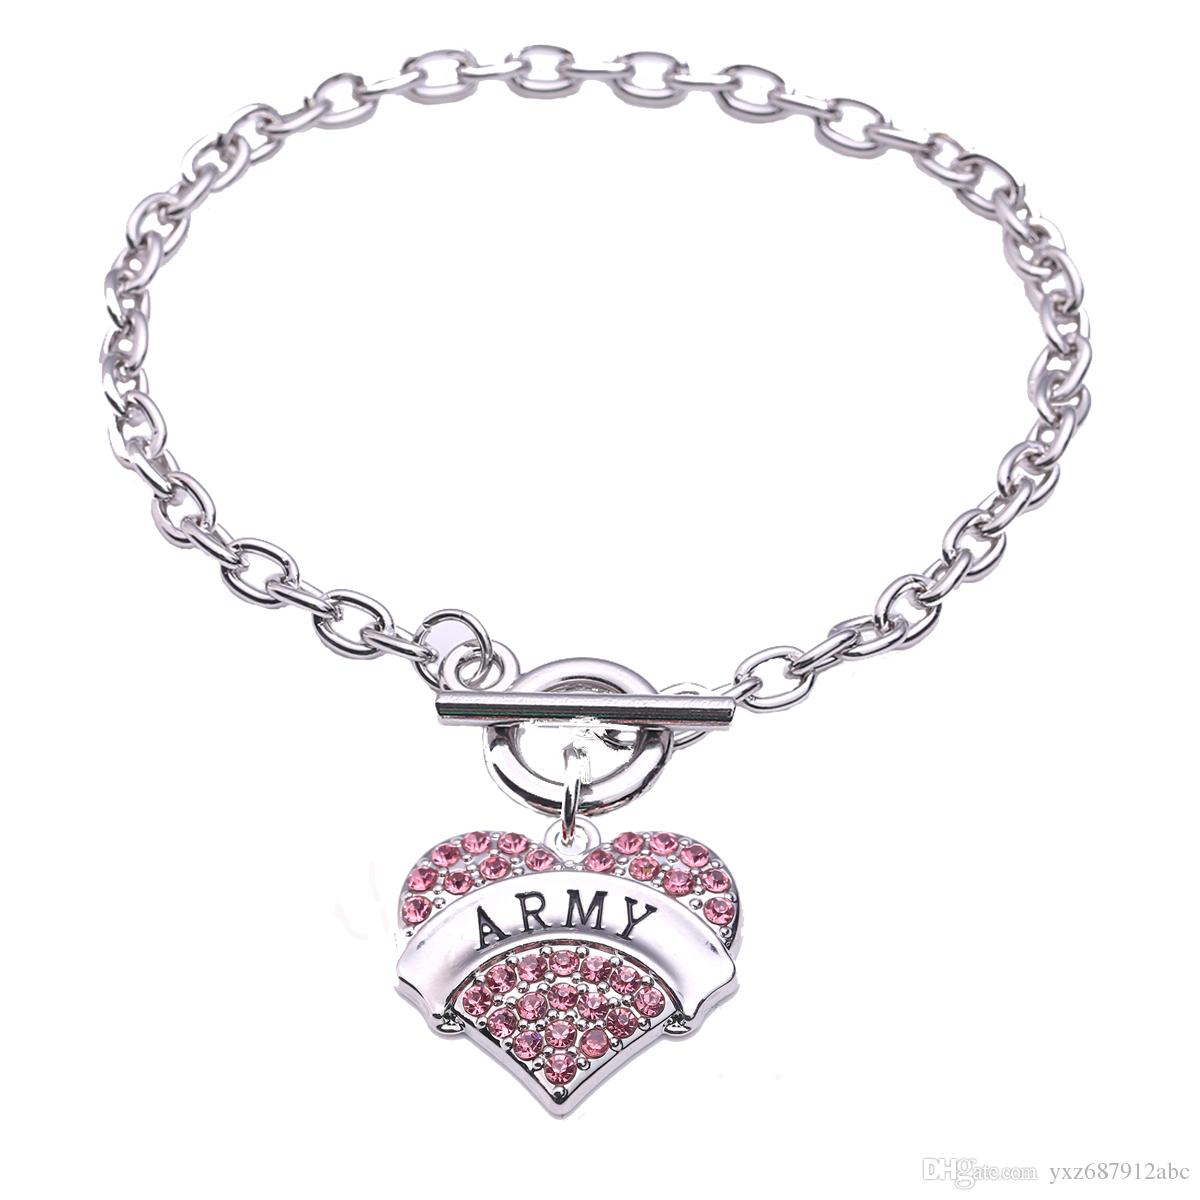 Letters Army Fashion Heart Love Rhodium Plated With Sparkling Crystals  Charm Link Chain Bracelets For Woman Jewelry Gift Letters Army Heart  Bracelets